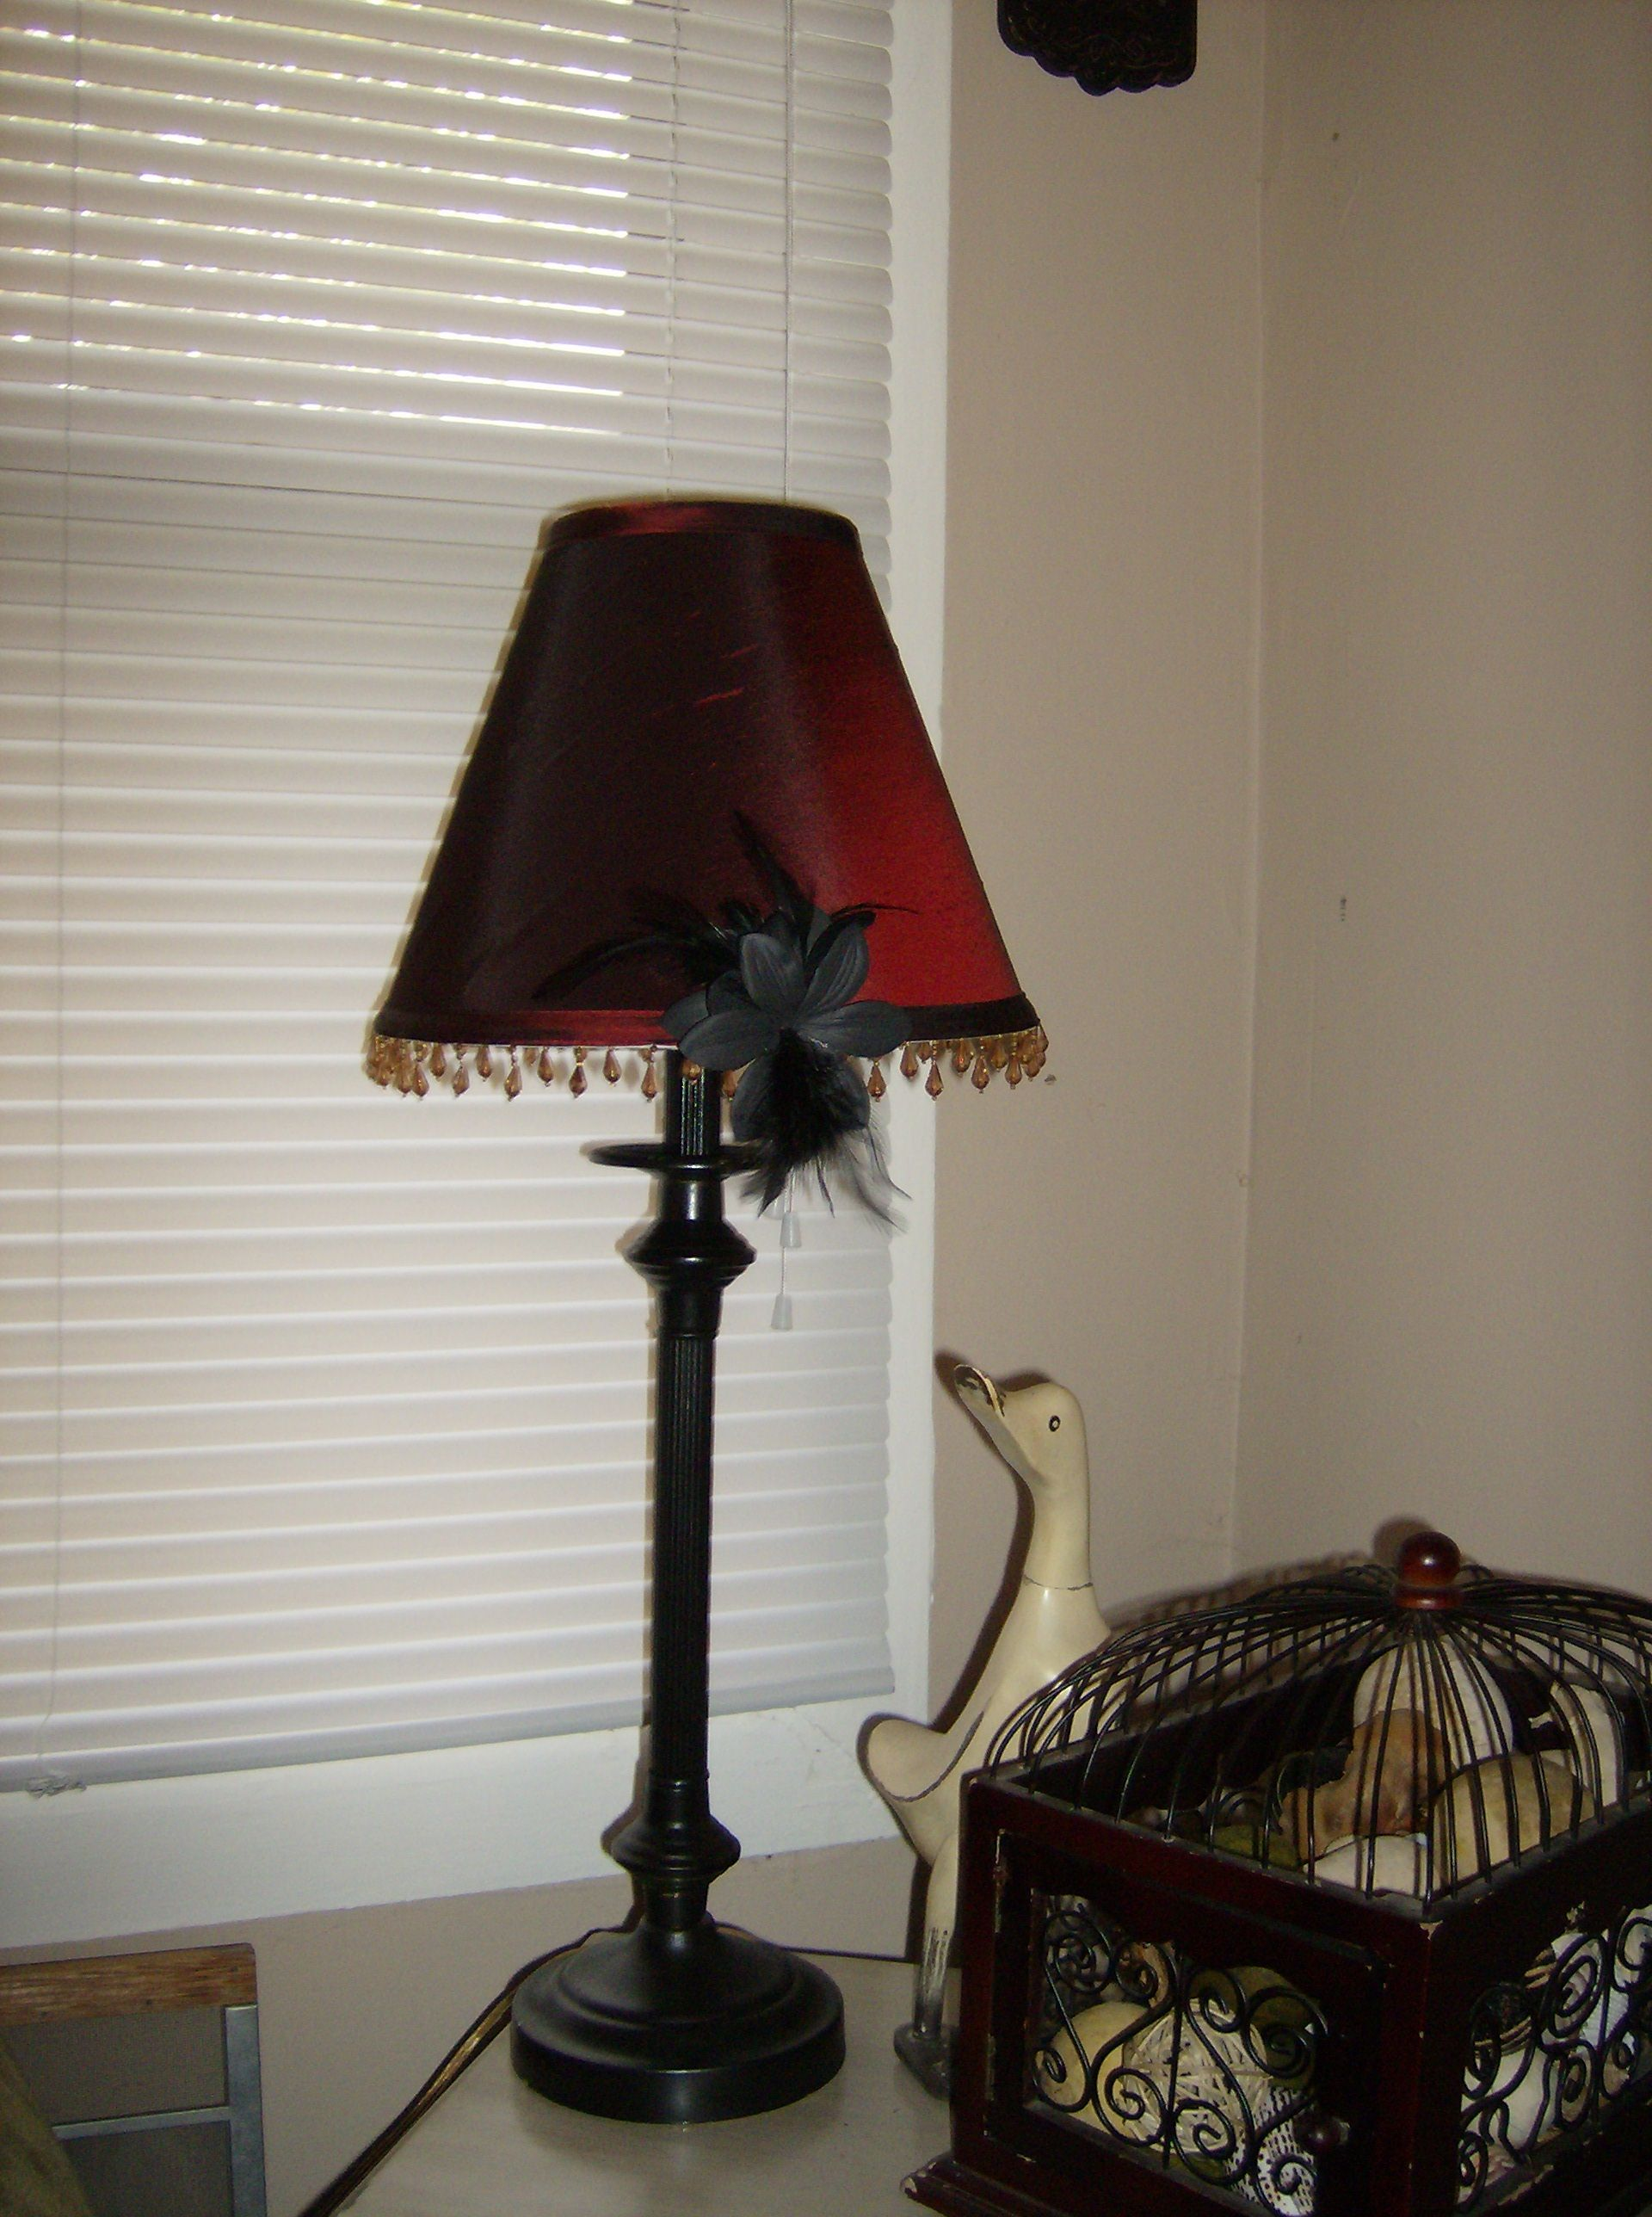 Hobby Lobby Lamp Shades Beauteous Repurposed Lamp Shade Ala Hobby Lobby Projects  Pinterest Review